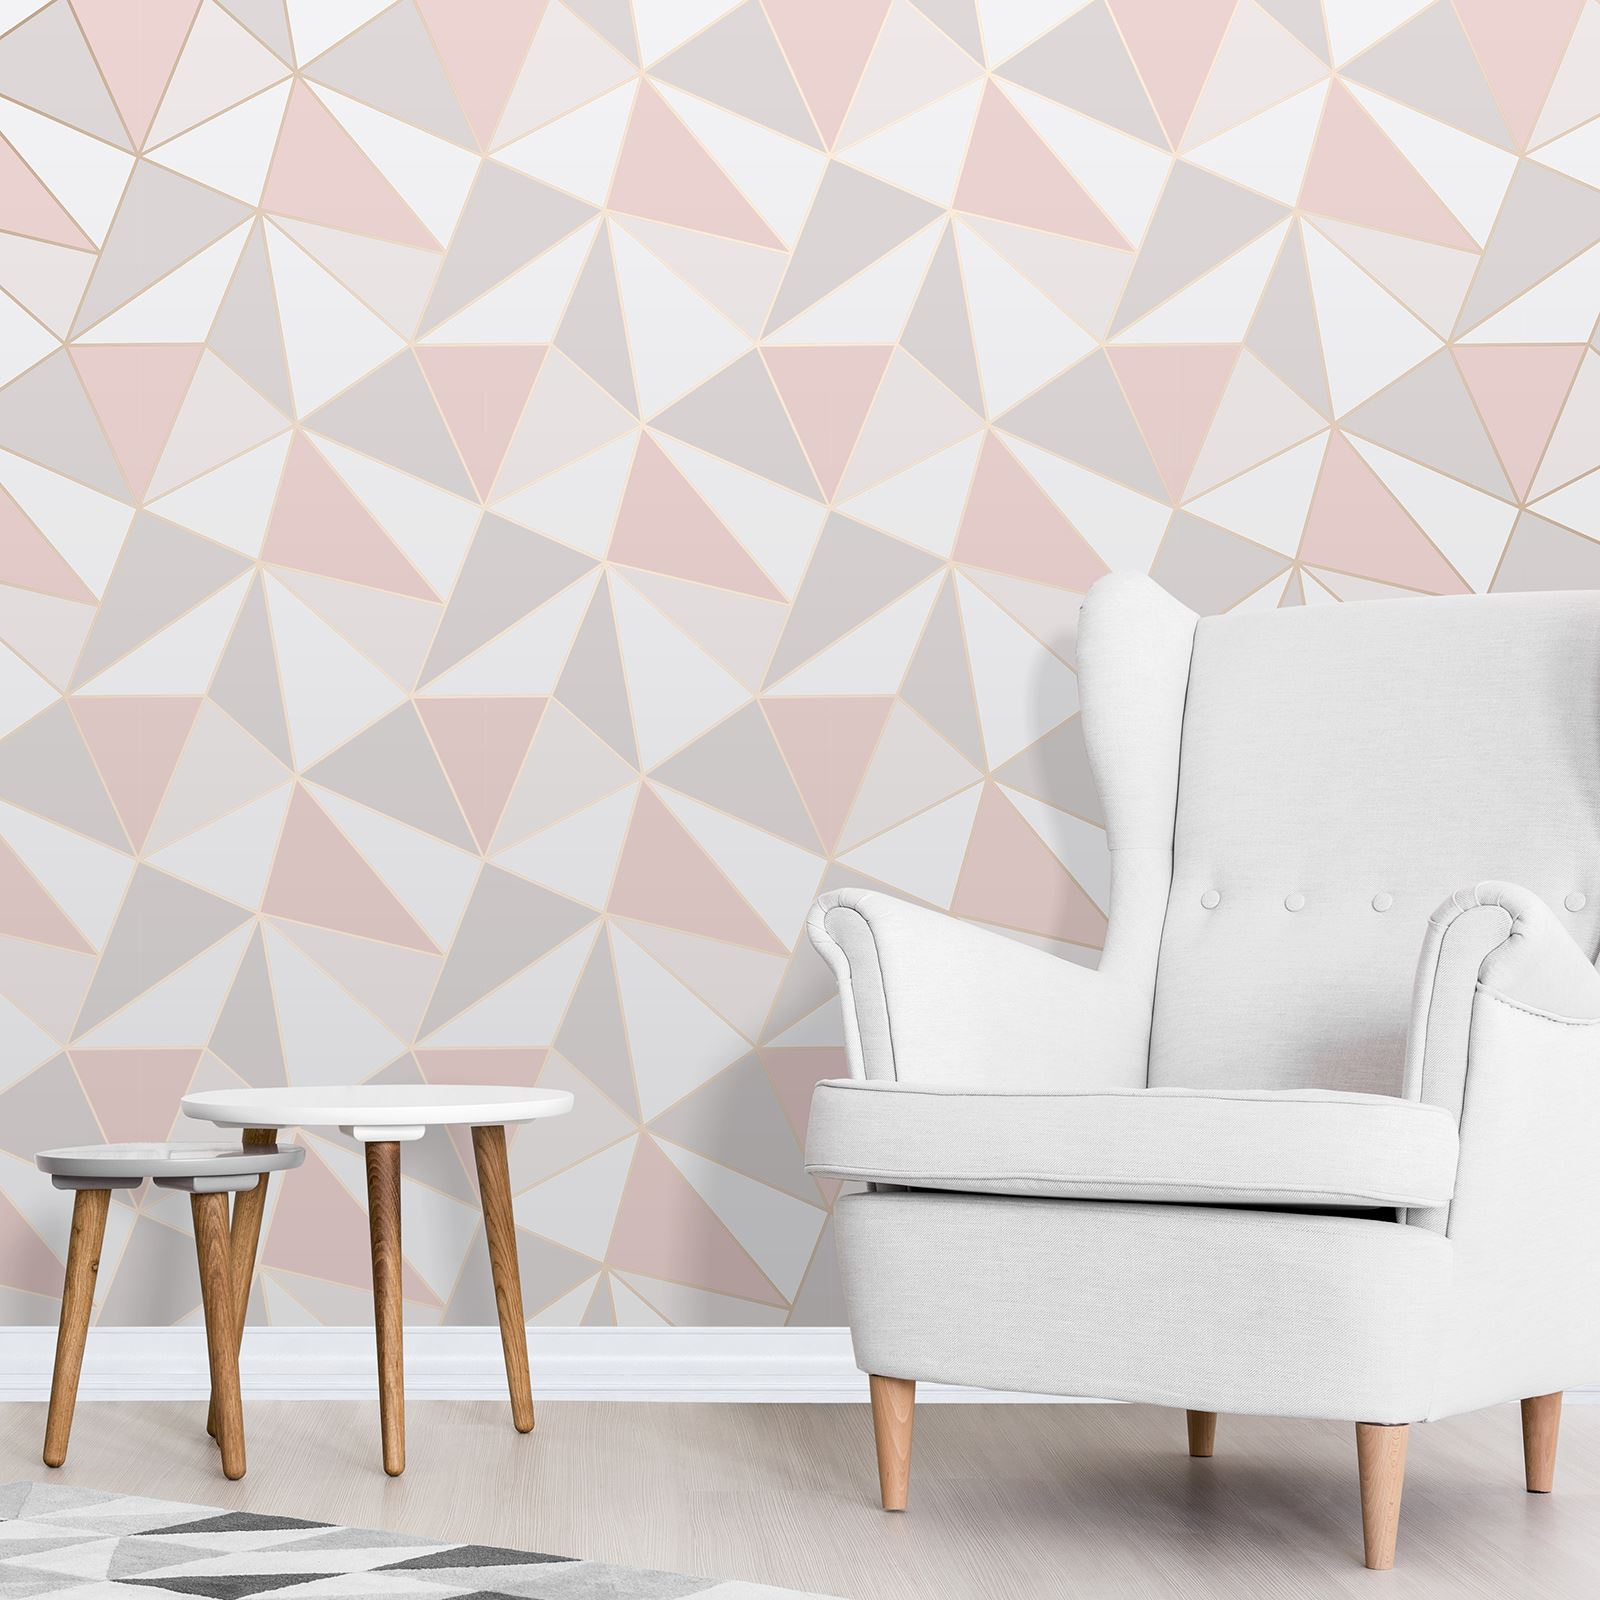 Apex geometric wallpaper rose gold pink fine decor for Gray and white wallpaper designs